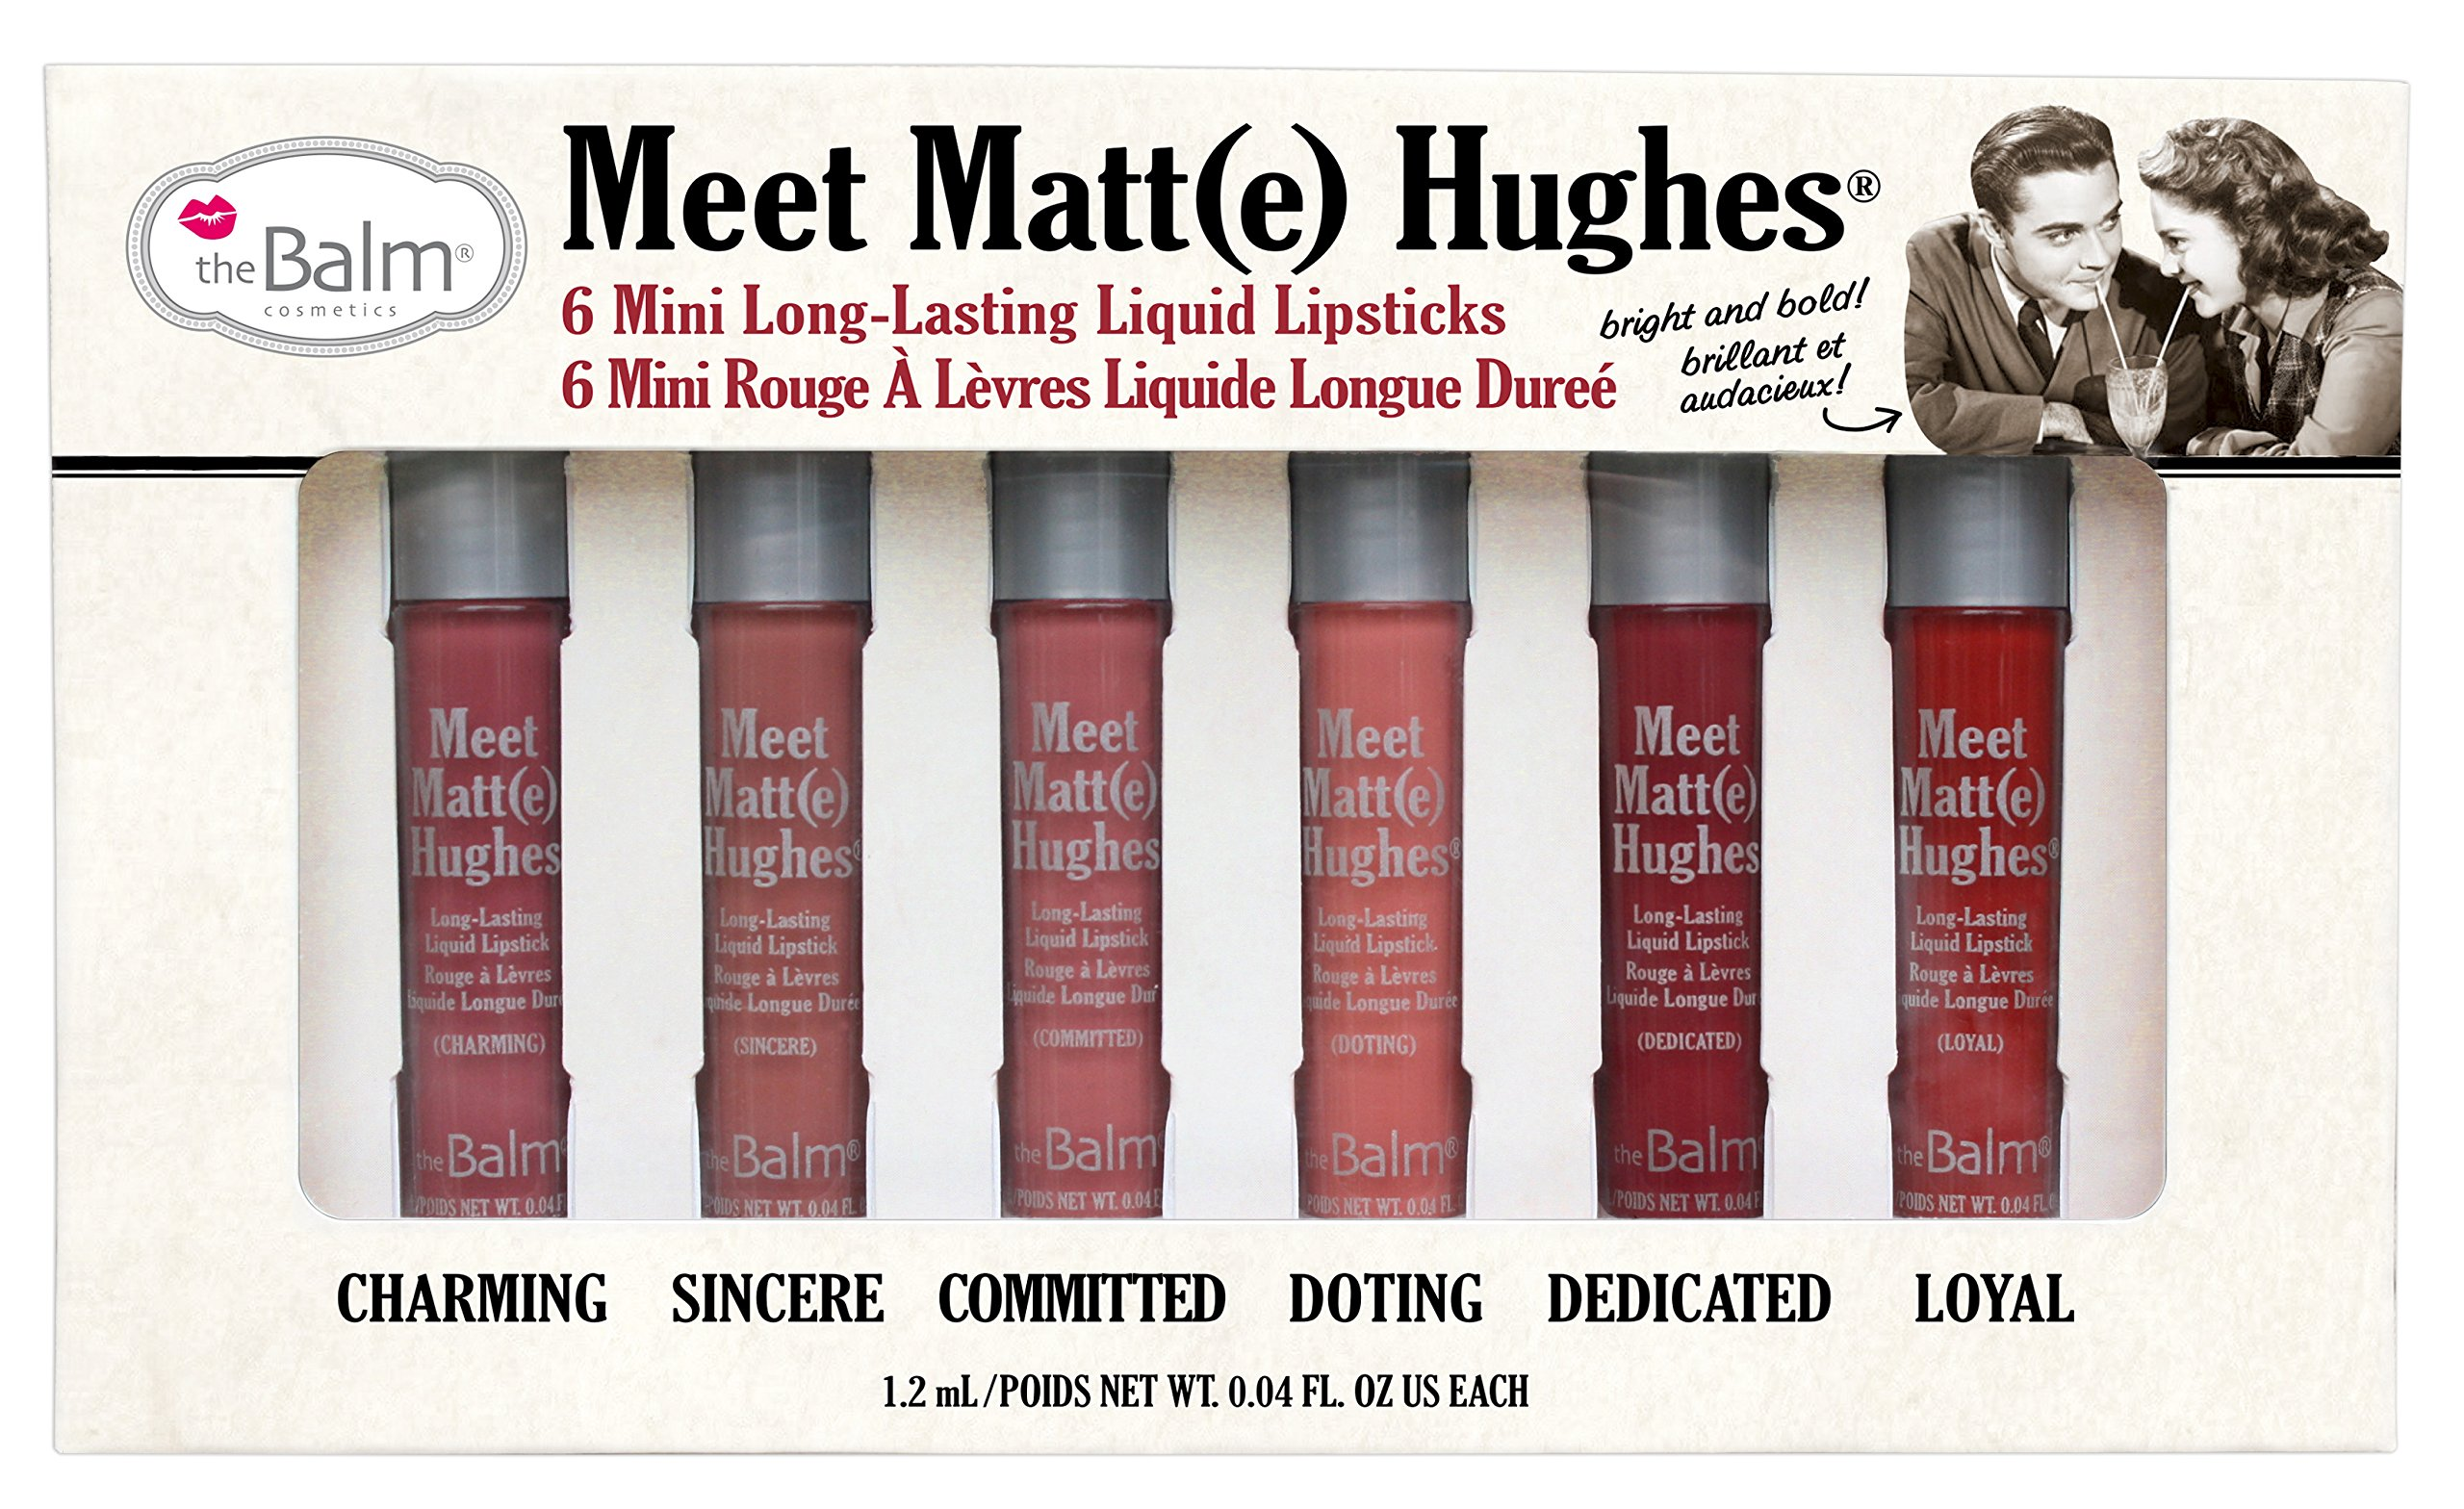 theBalm Meet Matt(e) Hughes Set of 6 Mini Long-Lasting Liquid Lipsticks by theBalm